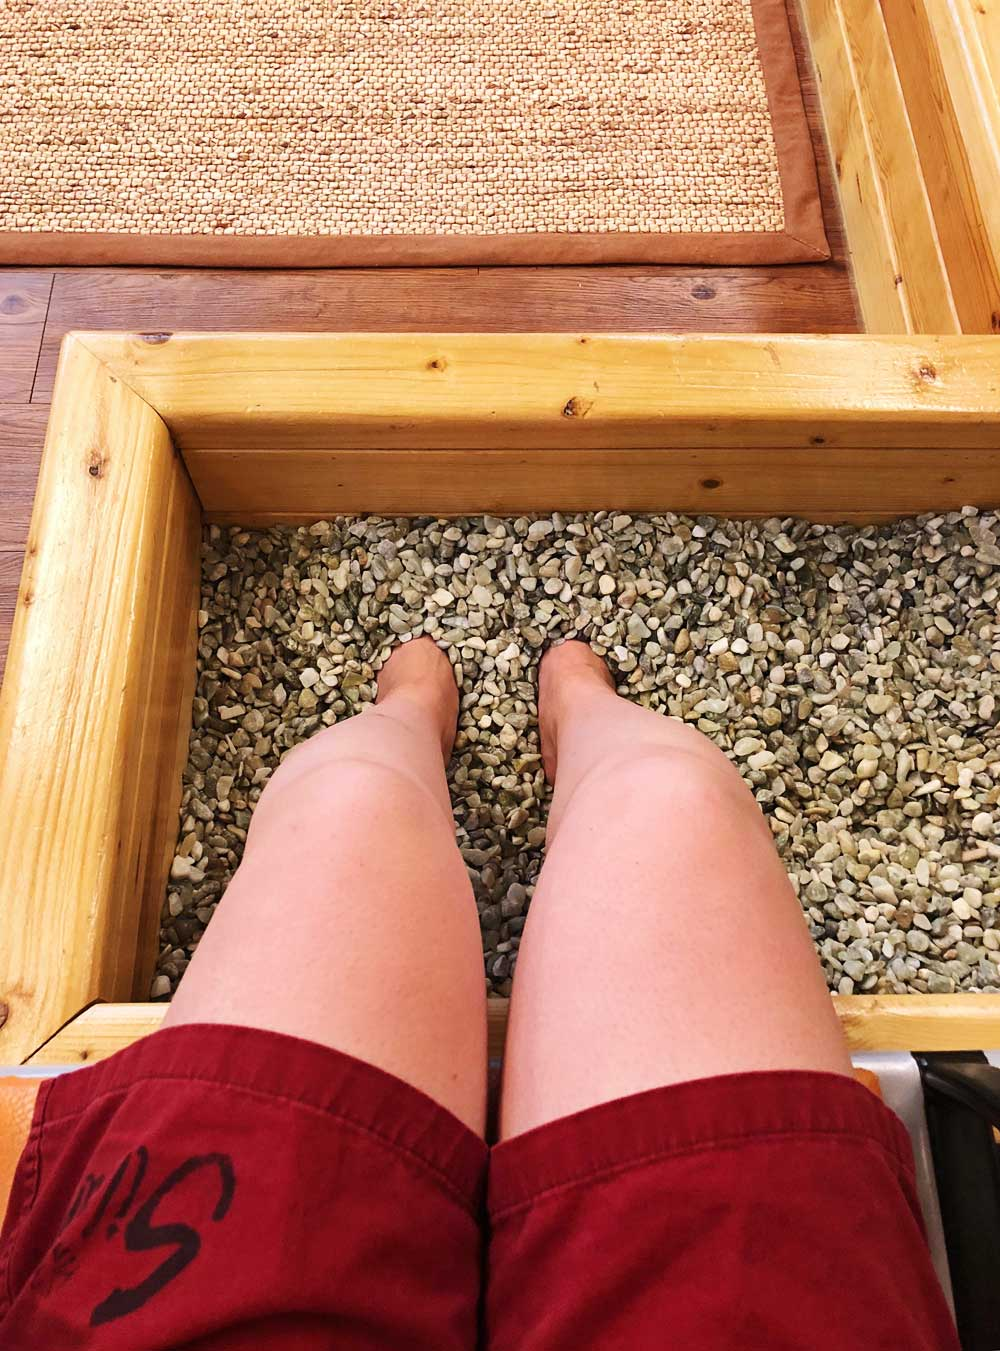 A Guide to Korean Bath and Sauna (Jjimjilbang) Experience in Seoul - Siloam Sauna Heated Stones